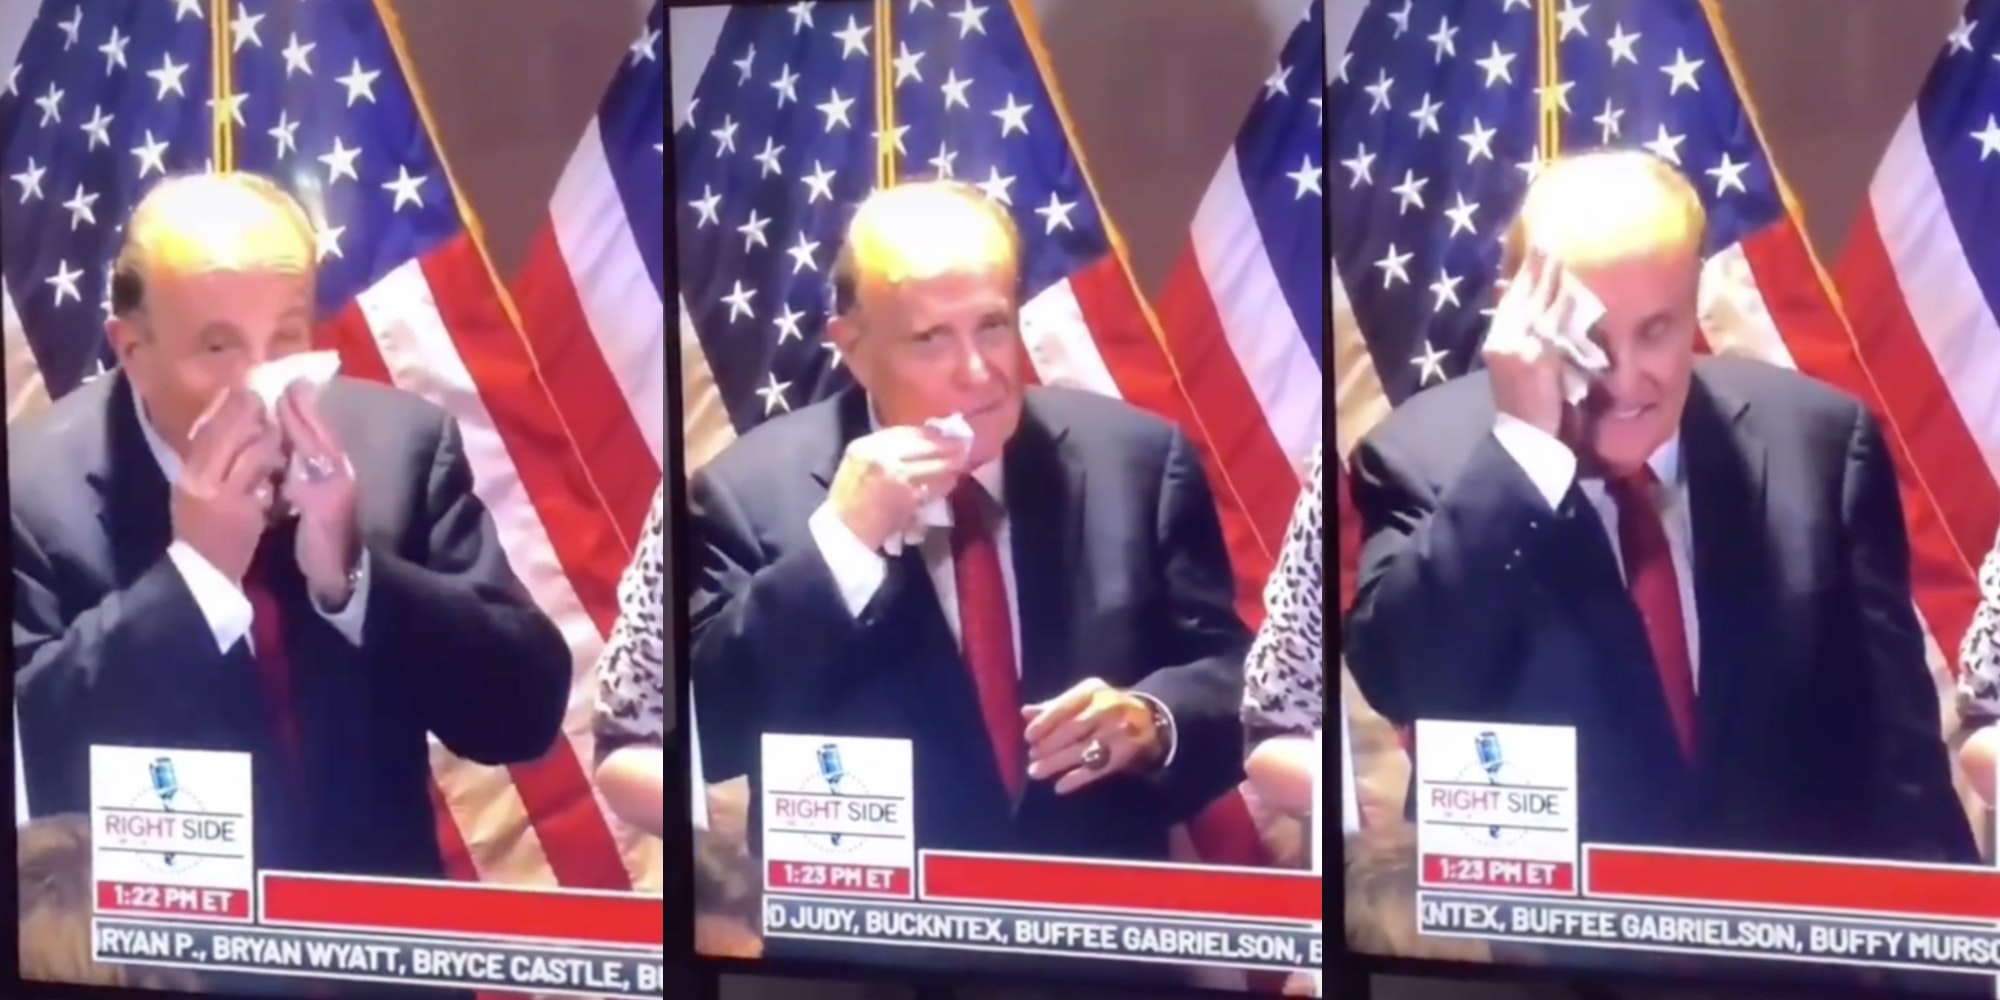 rudy giuliani blowing nose wiping face video